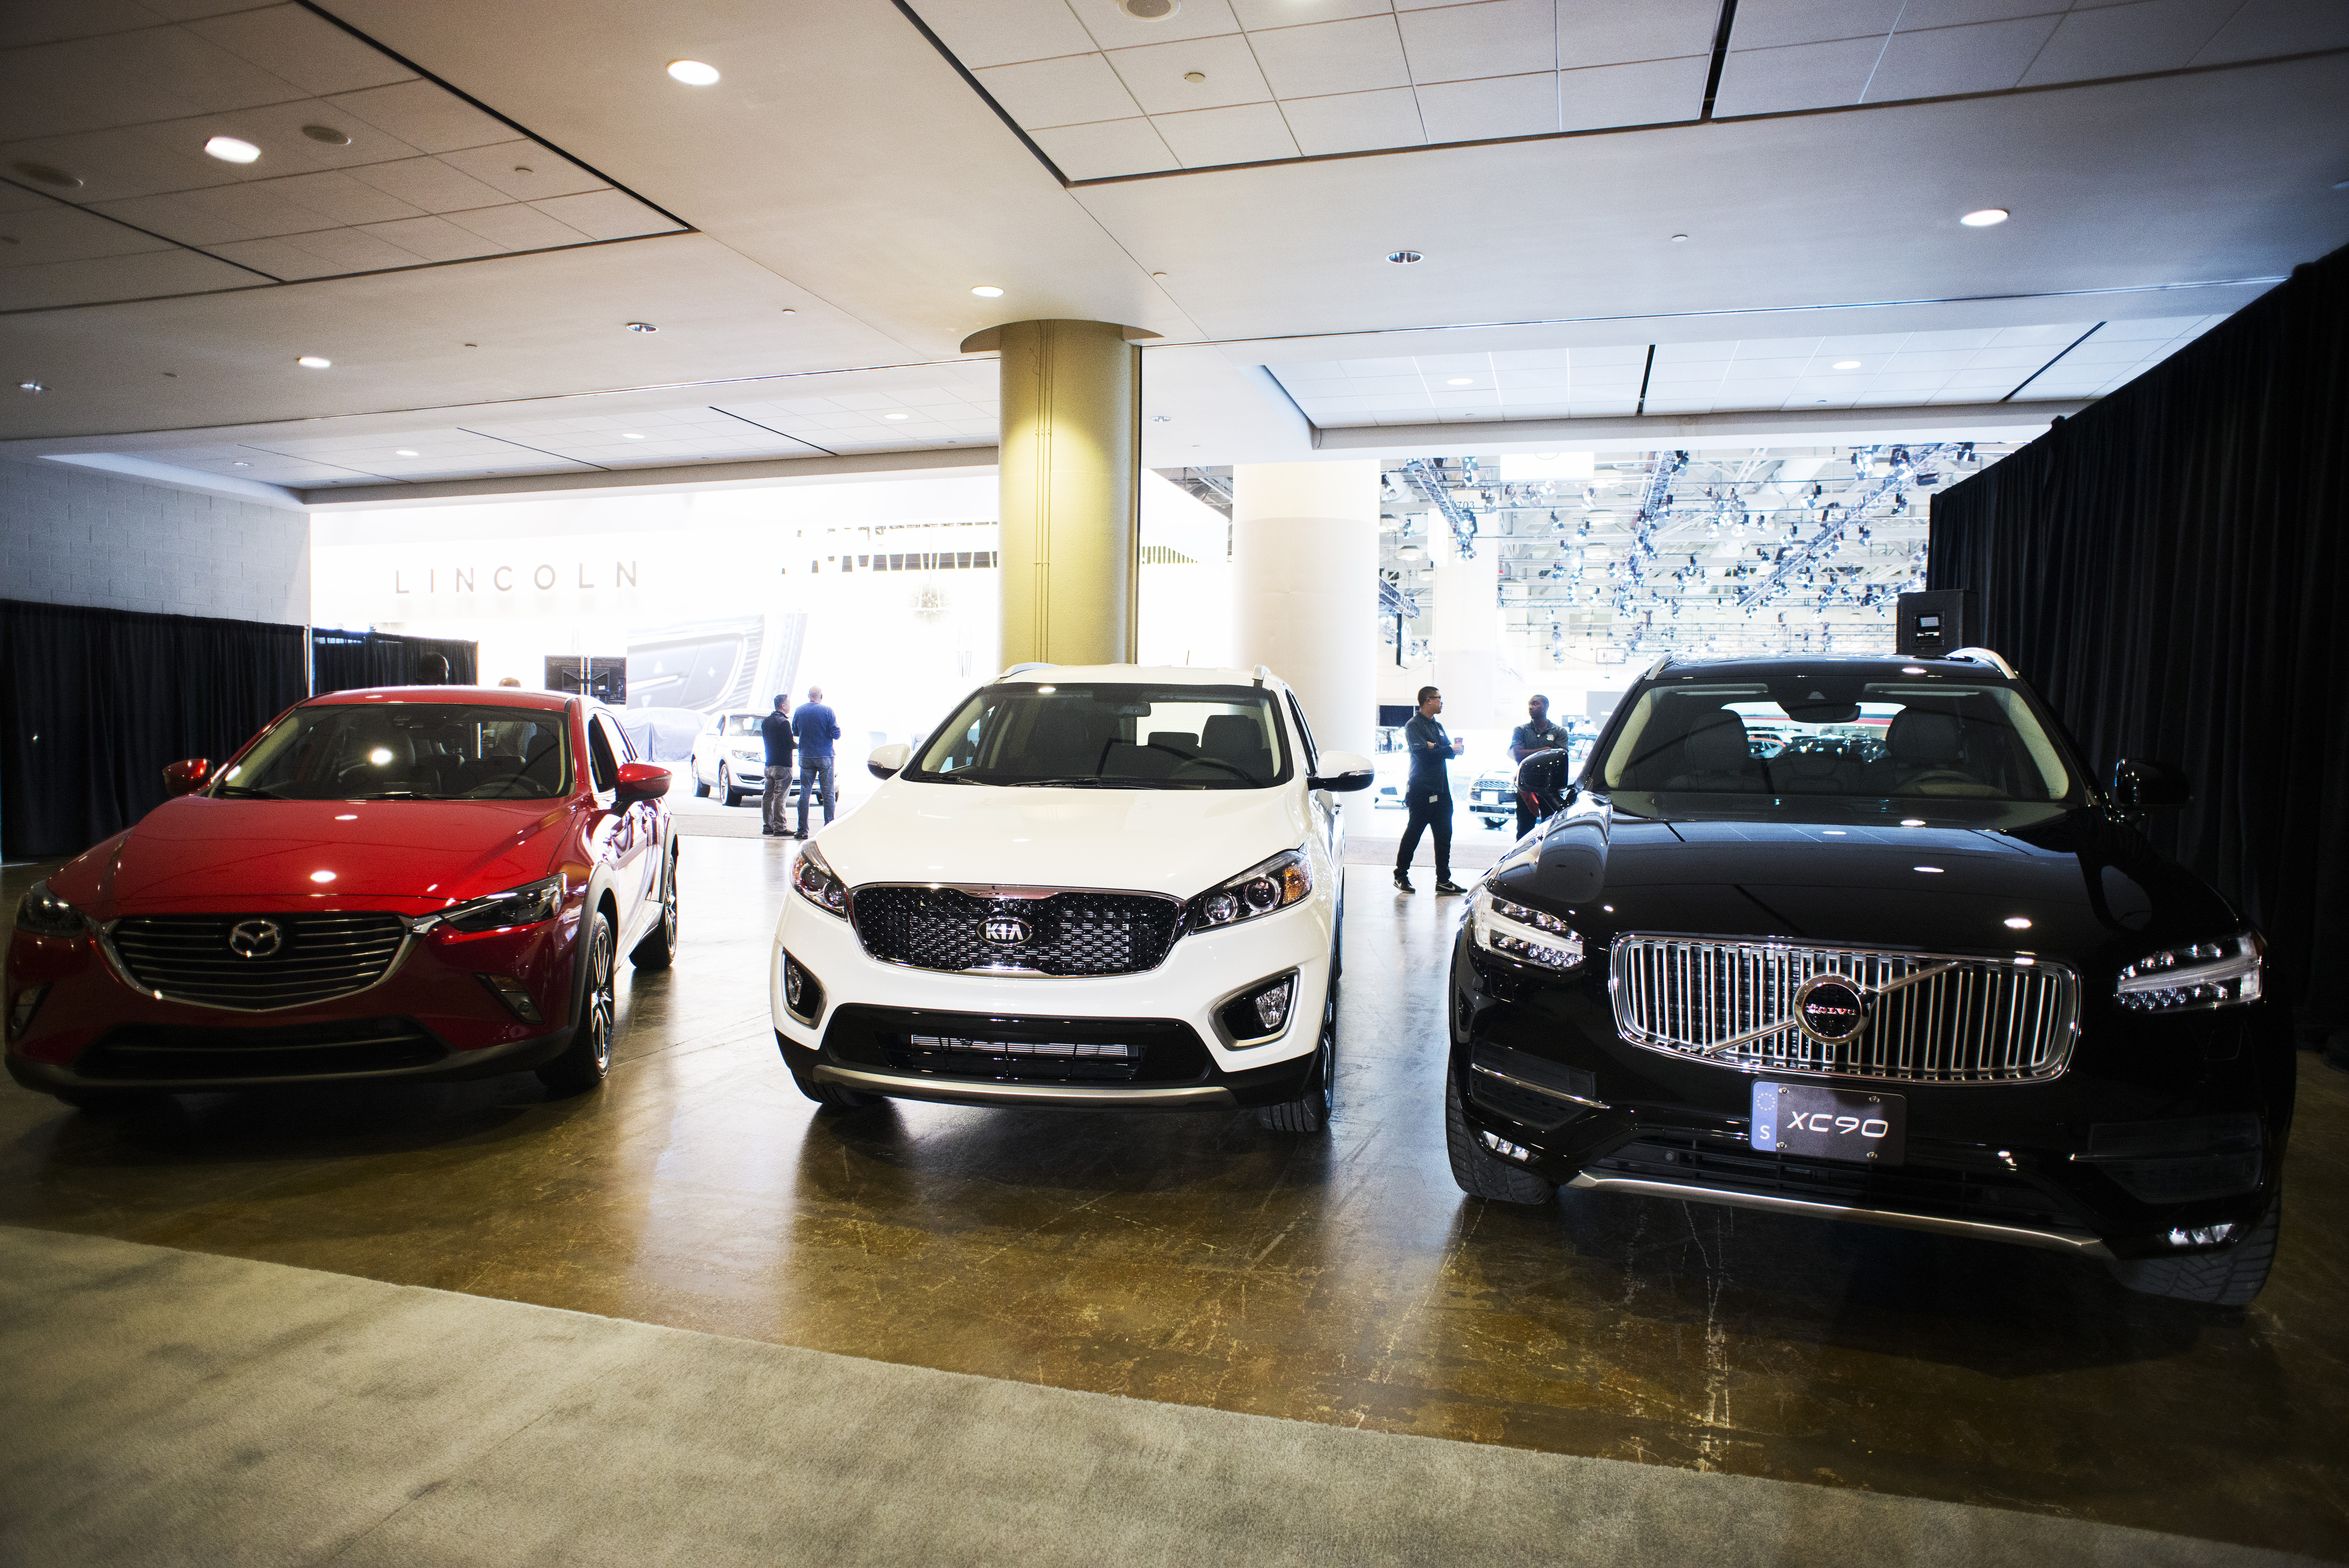 Finalists for the 2016 Canadian Utility Vehicle of the Year (L to R) Mazda CX-3, Kia Sorento and Volvo 